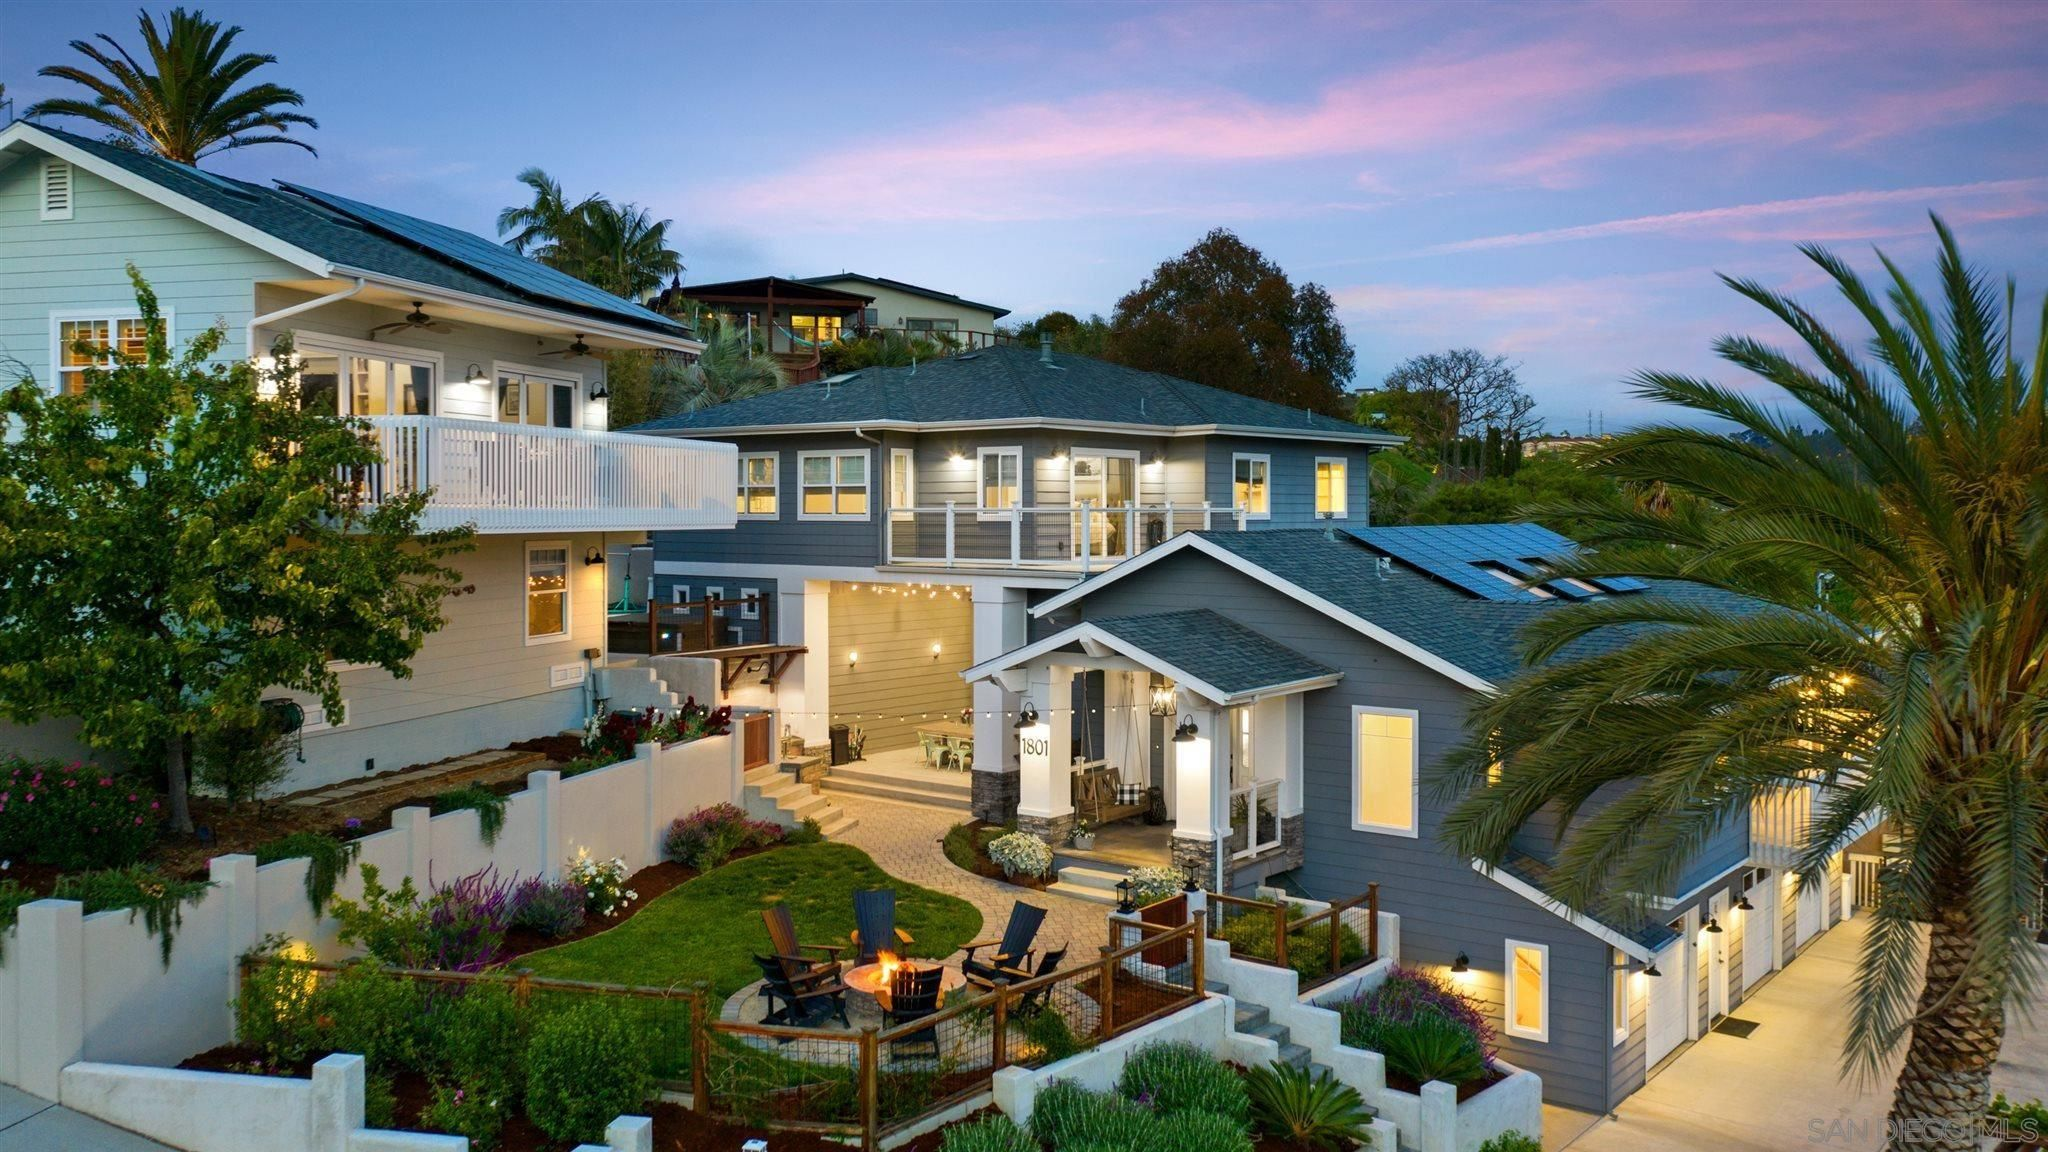 Main Photo: BAY PARK House for sale : 6 bedrooms : 1801 Illion St in San Diego